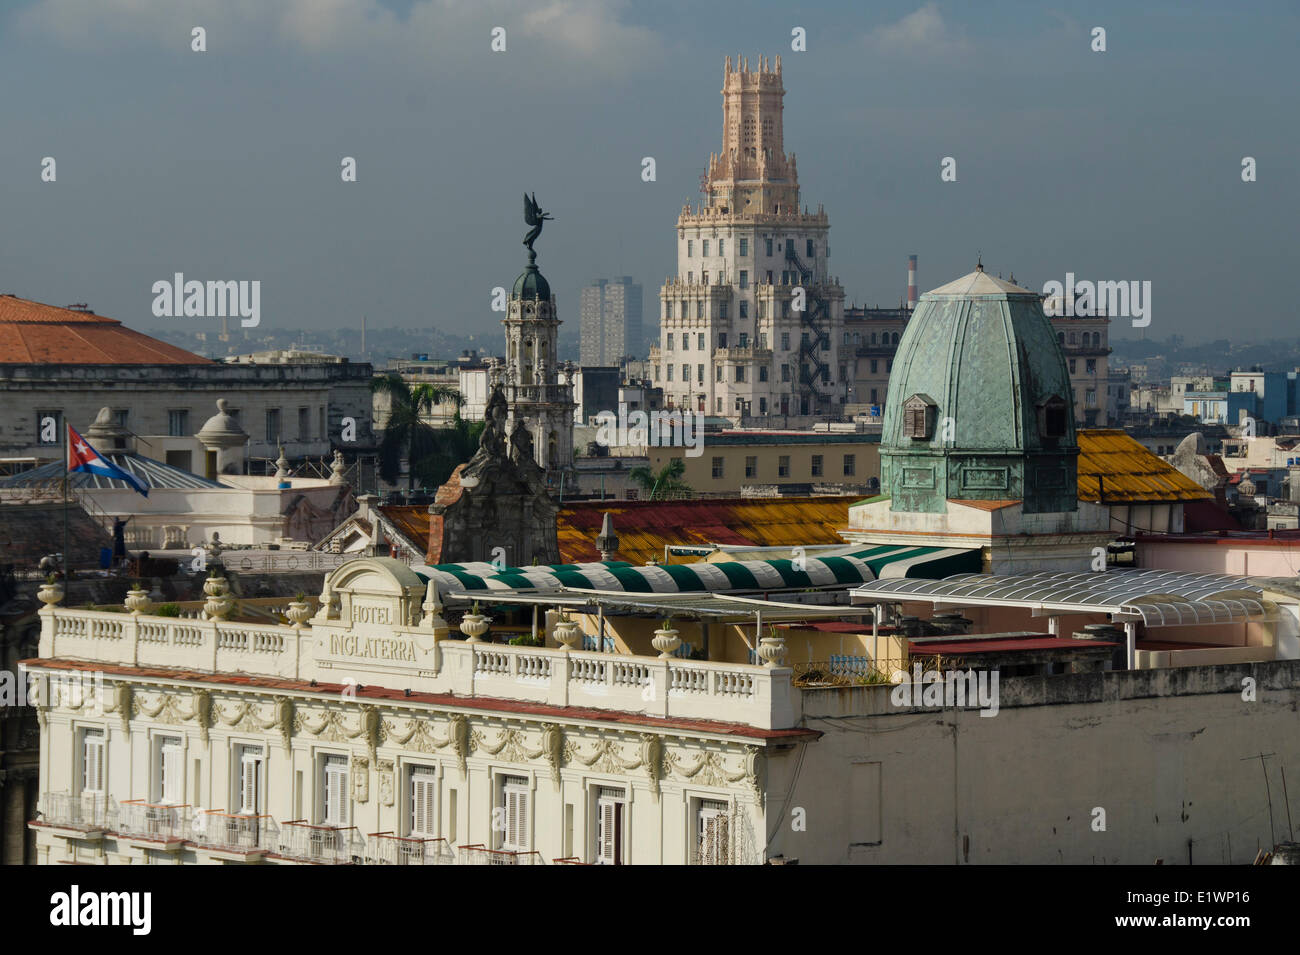 View from rooftop of Hotel Park central, Hotel Inglaterra, Telephone Building tower, Havana, Cuba - Stock Image